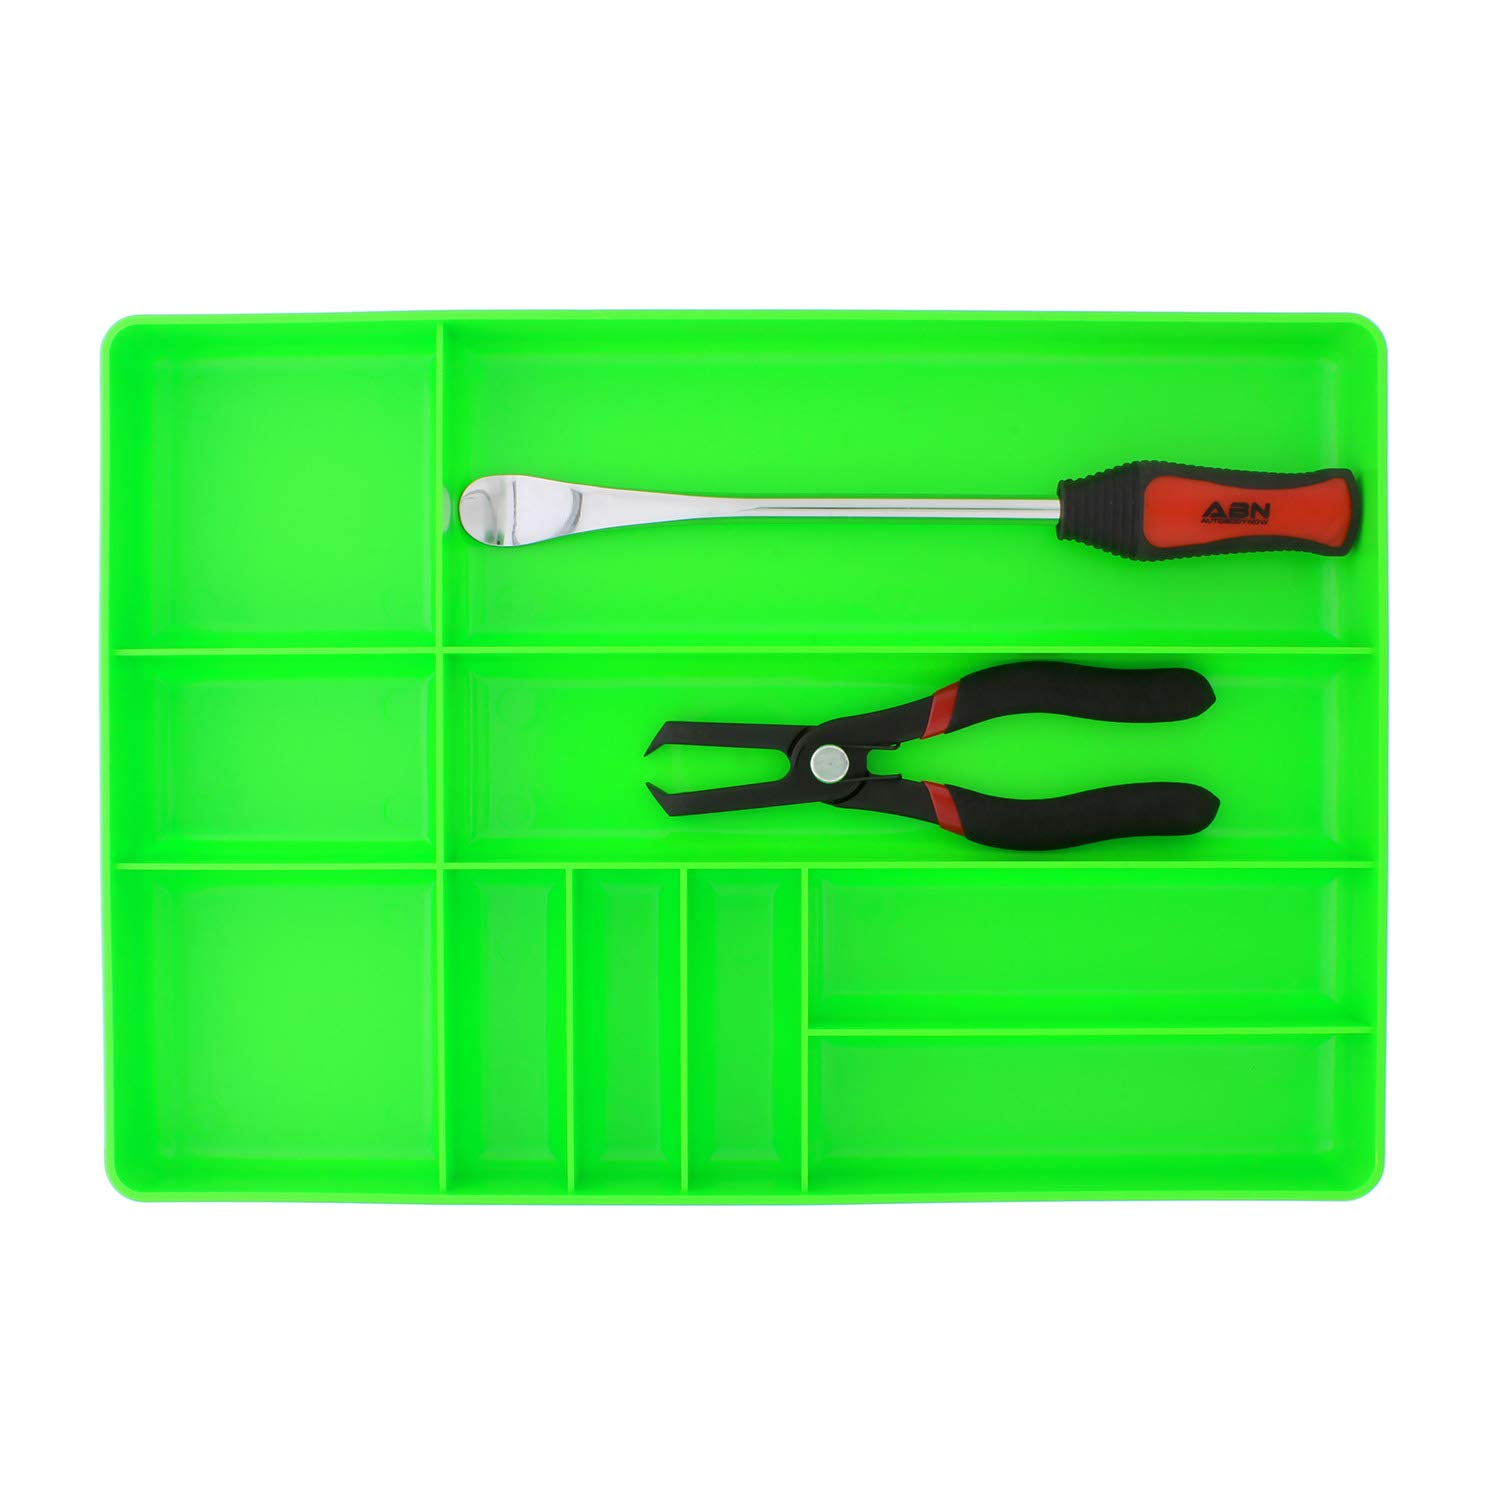 ABN | Toolbox Drawer Organizer Tool Organizer Tool Tray - Tool Drawer Organizer Sorting Tray, 16x11x1.5'' Inch in Green by ABN (Image #3)